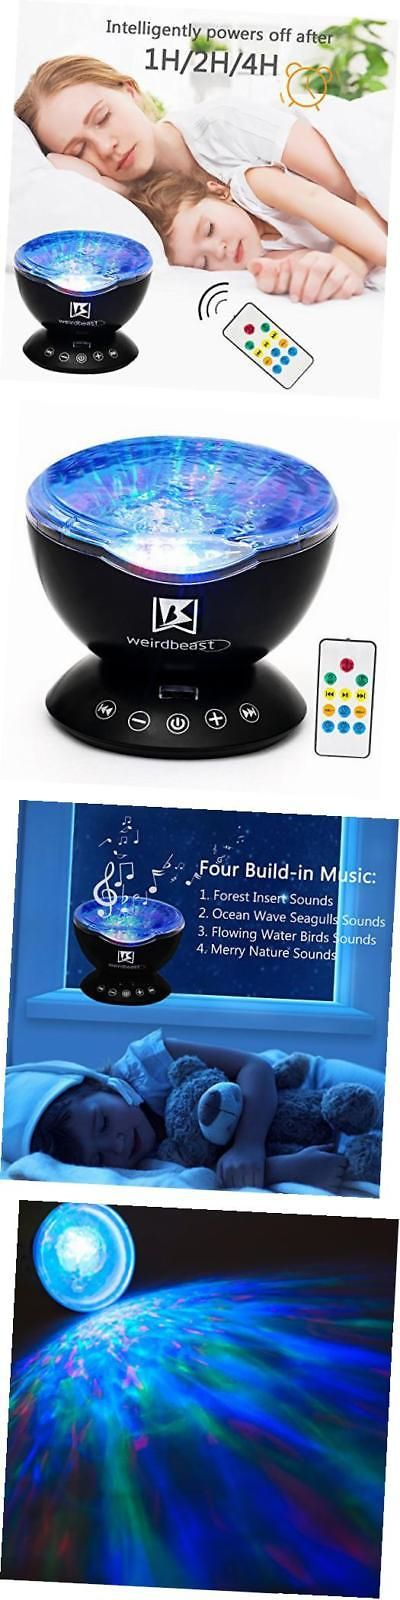 Night Lights 20702: [Generation 3] Remote Control Ocean Wave Project Sleep Night Light Projector -> BUY IT NOW ONLY: $30.57 on eBay!